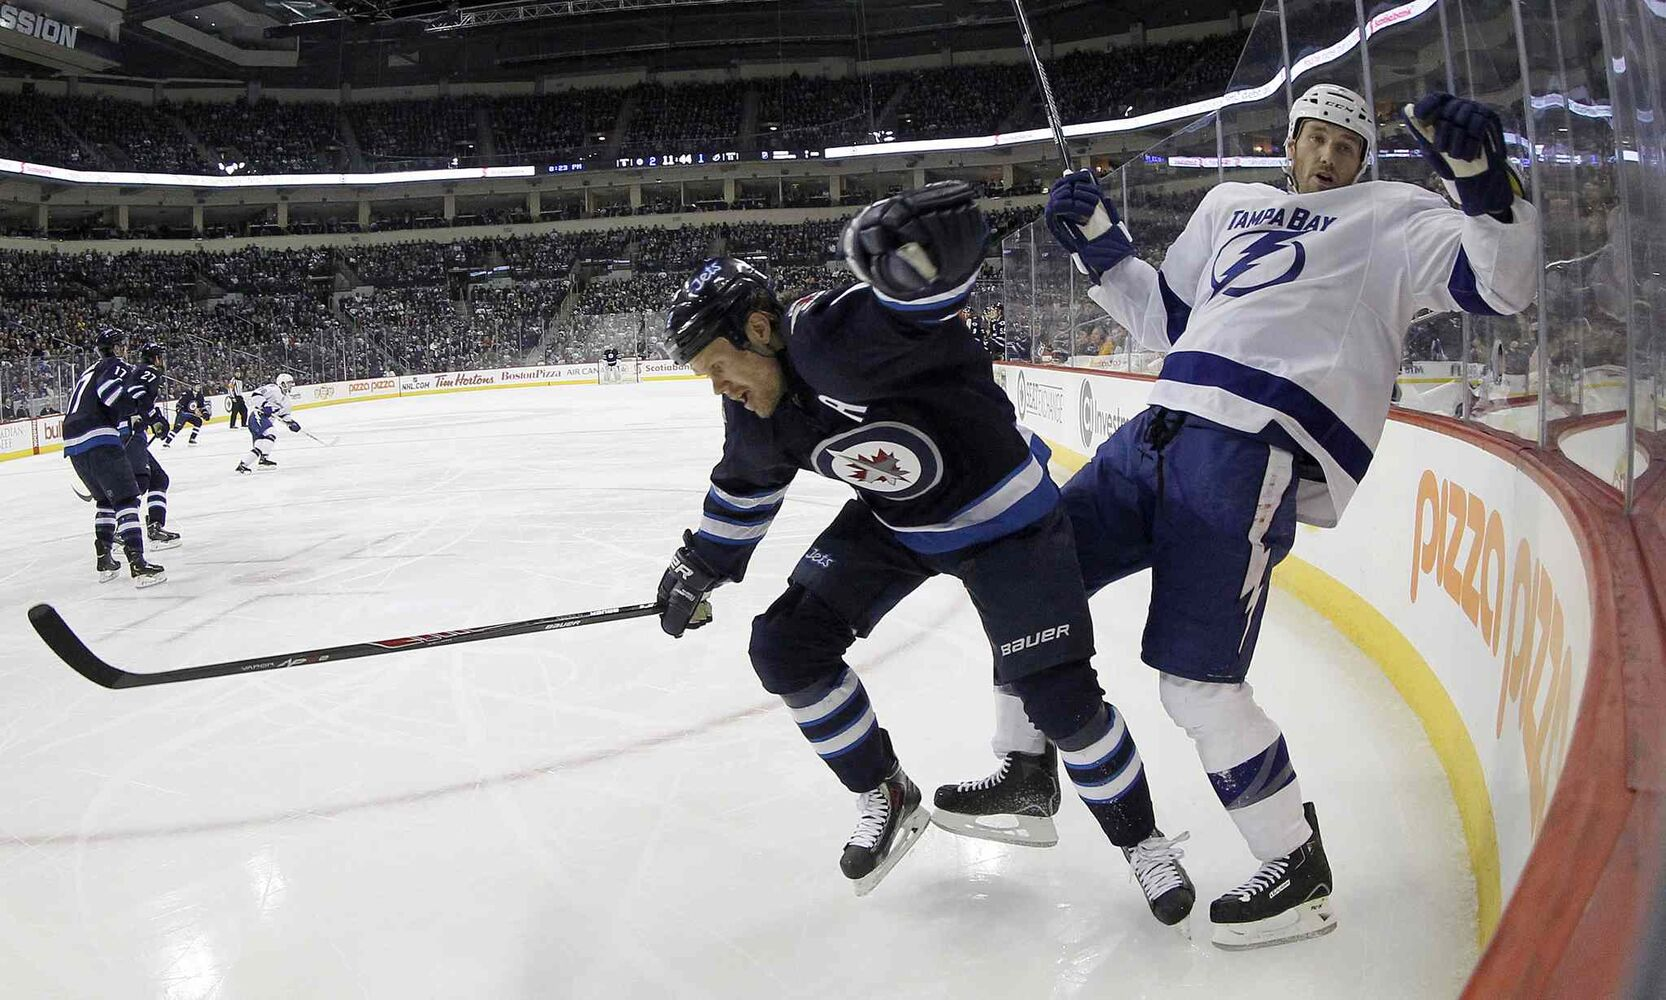 Winnipeg Jets' Olli Jokinen (12) hits Tampa Bay Lightning's Eric Brewer (2) during the second period.